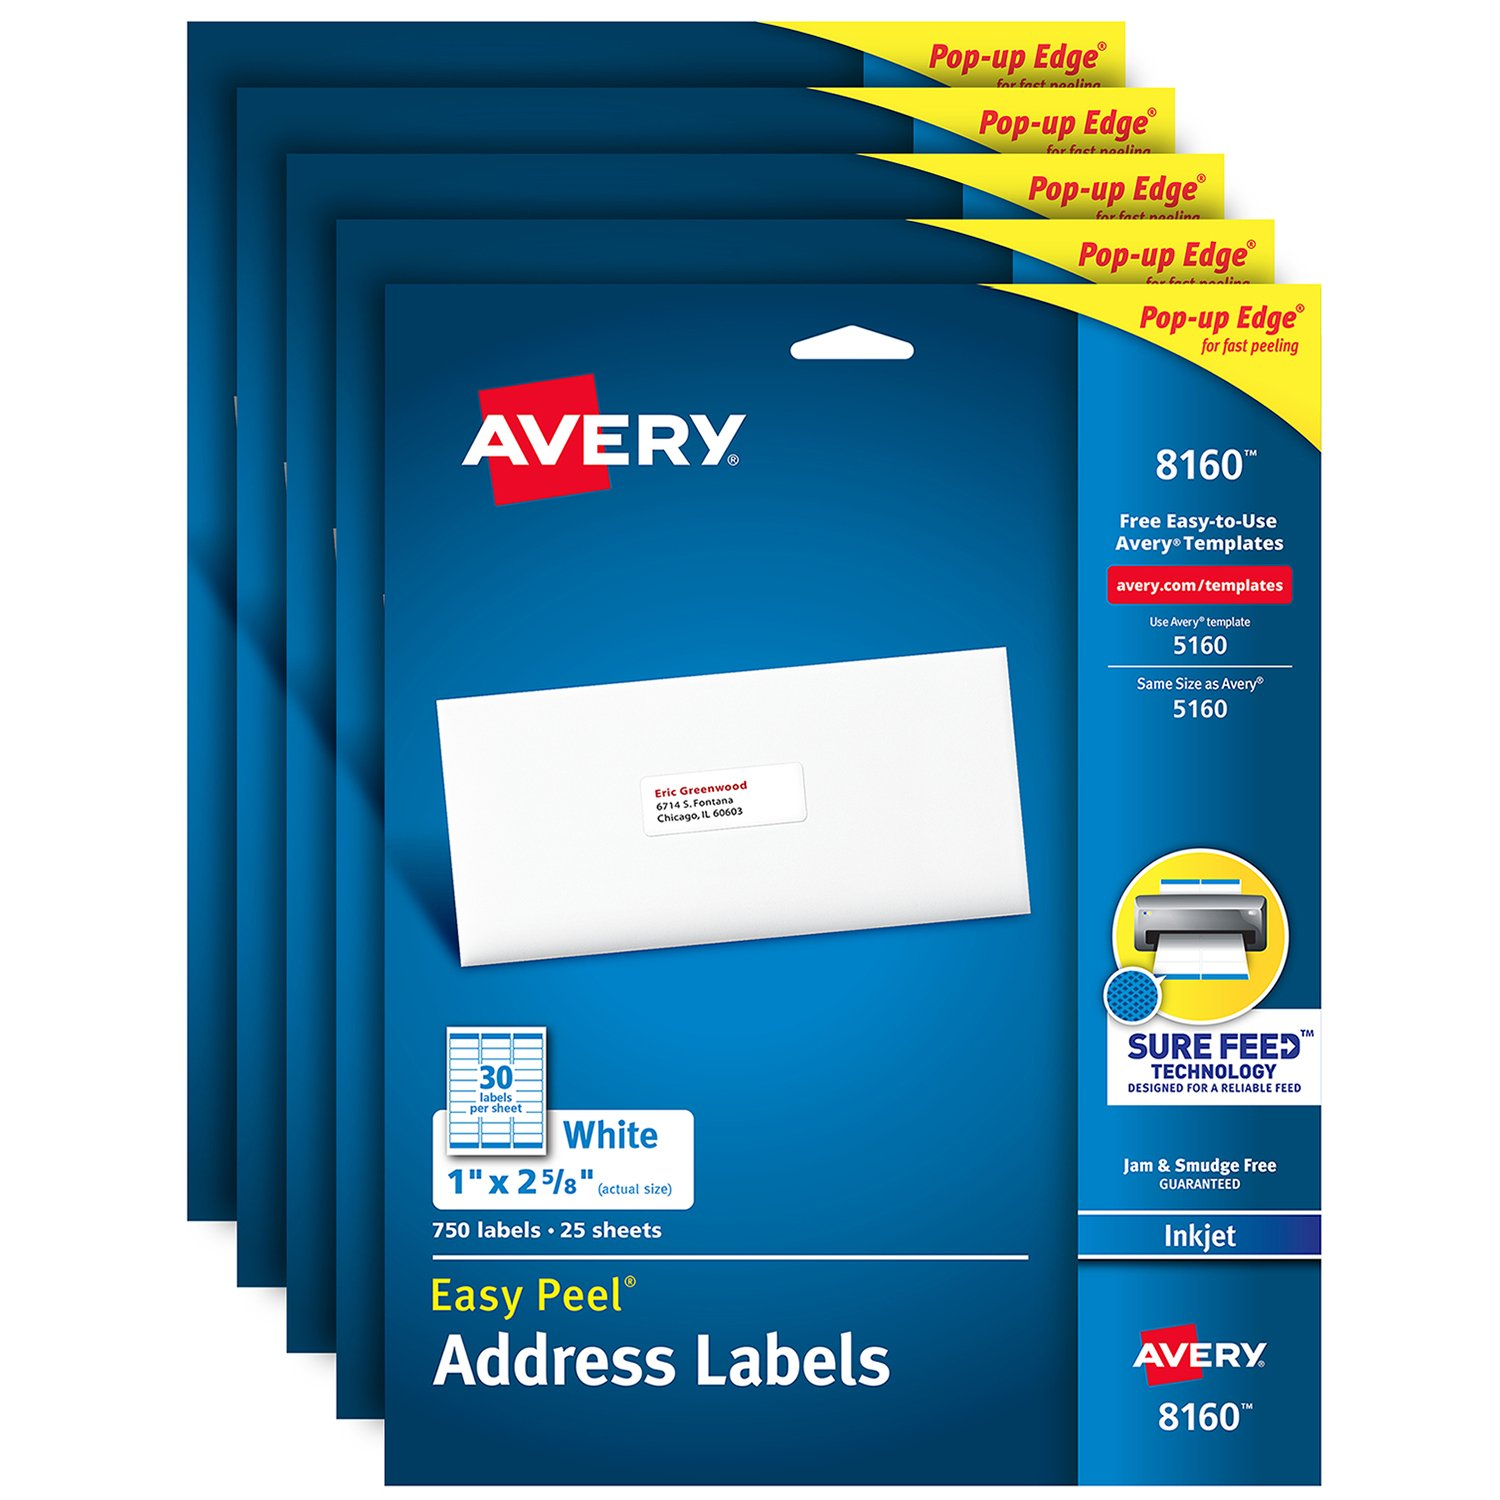 Avery Address Labels with Sure Feed for Inkjet Printers, 1'' x 2-5/8'', 3,750 Labels, Permanent Adhesive (5 Packs 8160)